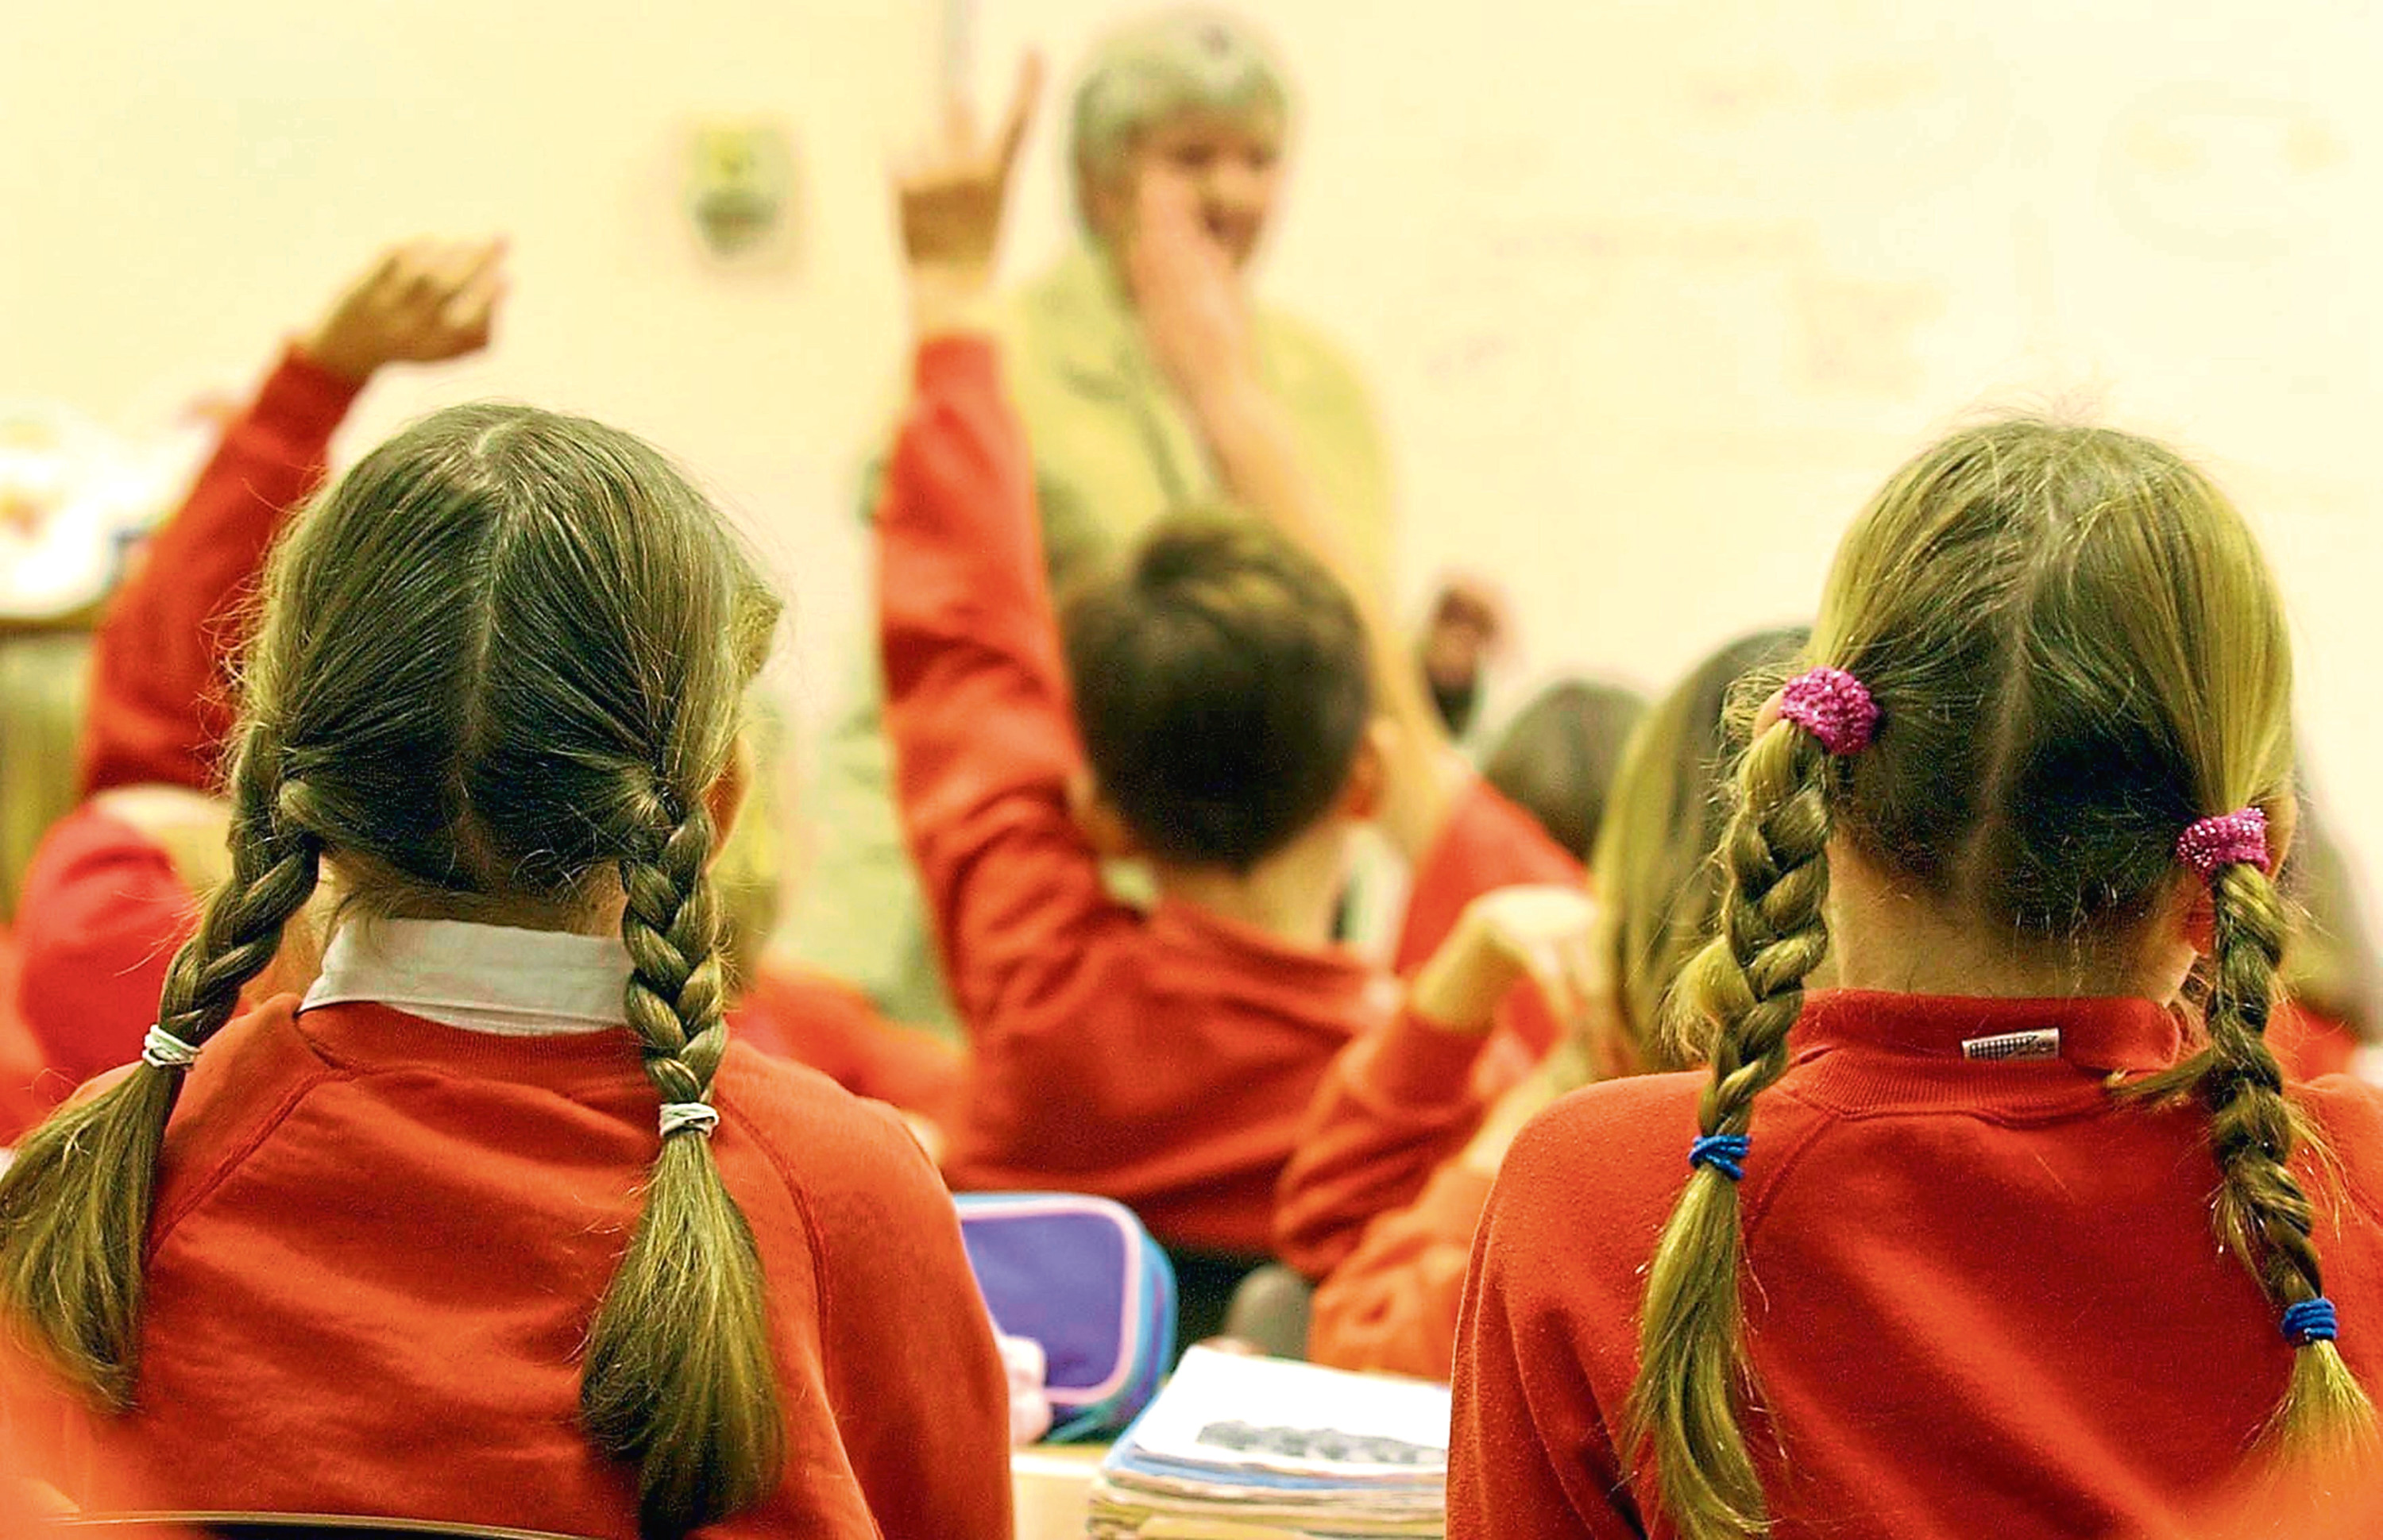 Three quarters of residents said they would pay more tax to fund better educational facilities